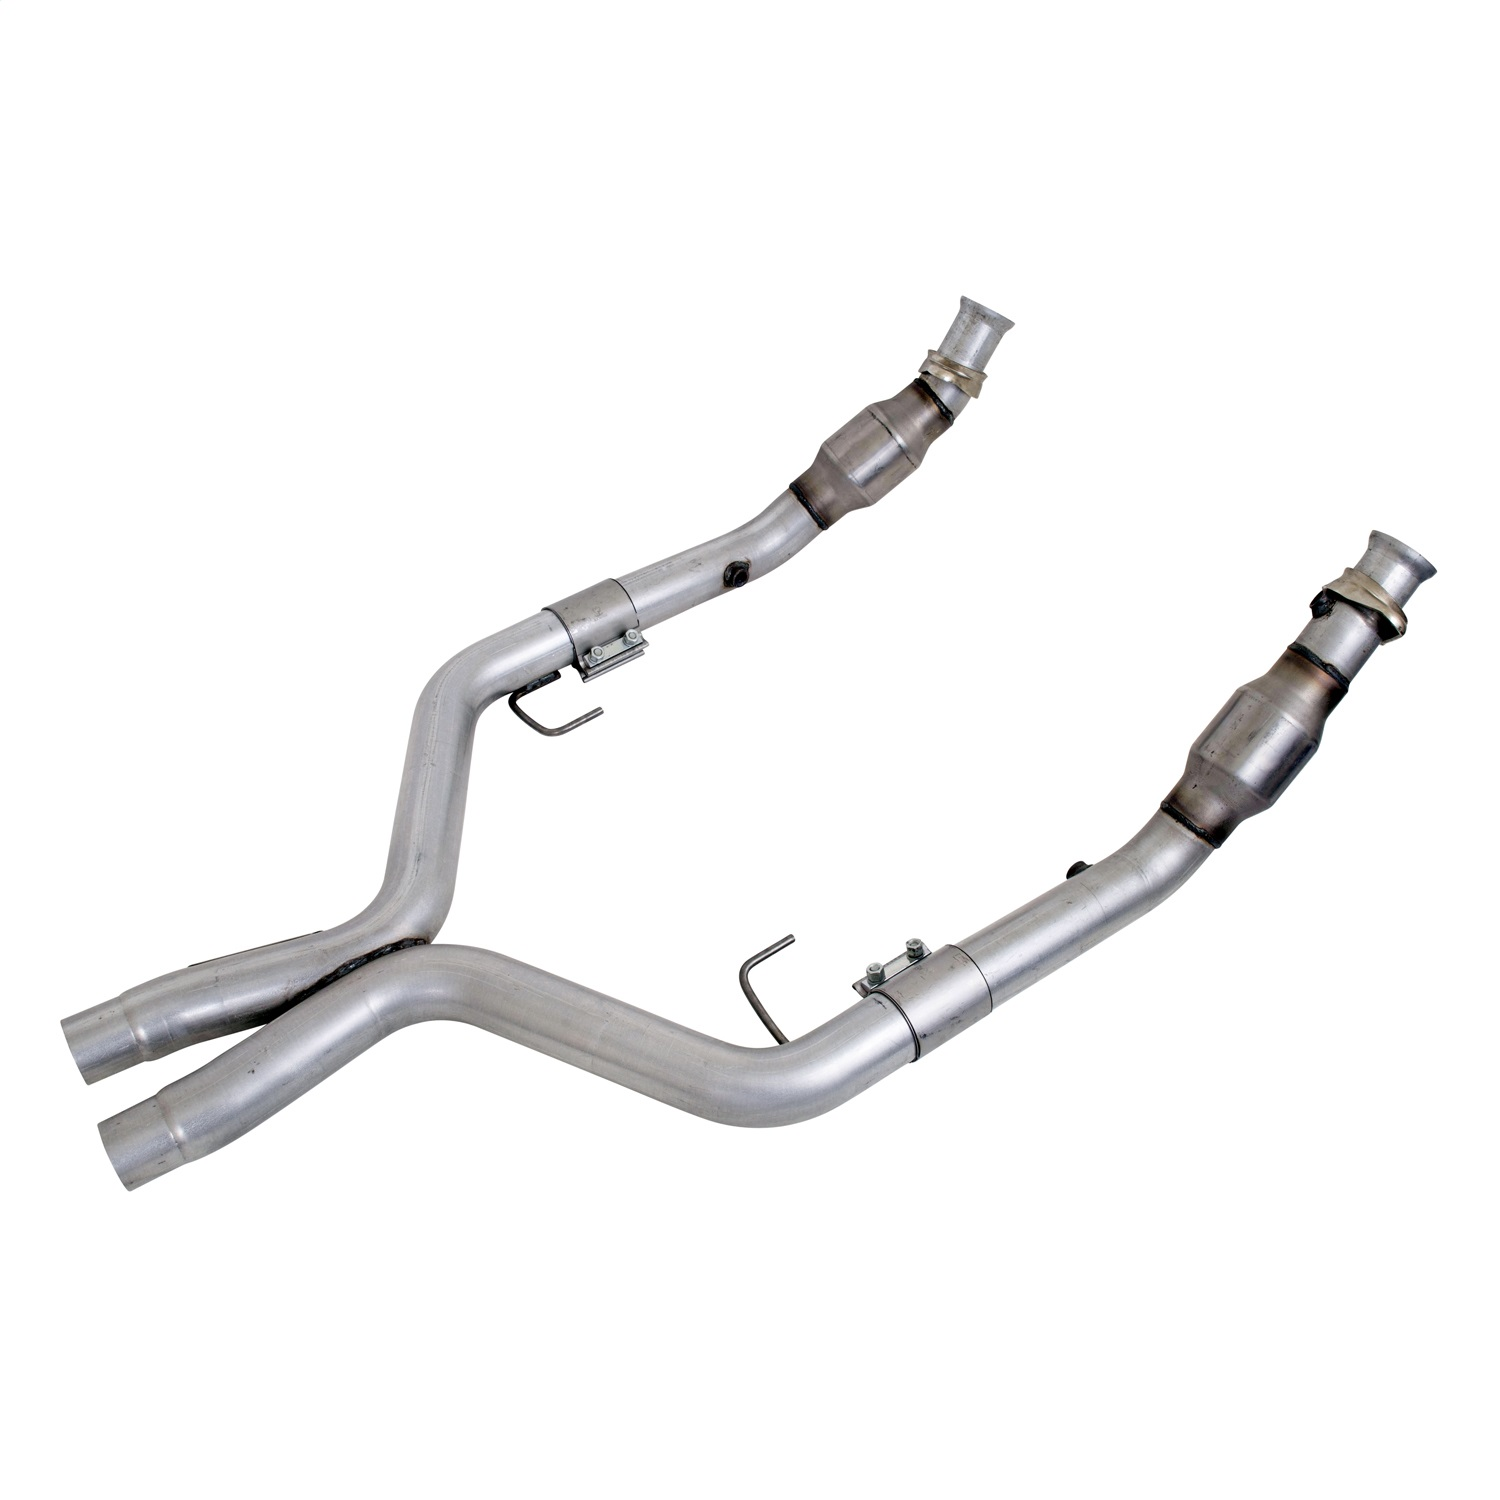 BBK Performance 1770 High-Flow Full X-Pipe Assembly Fits 05-10 Mustang